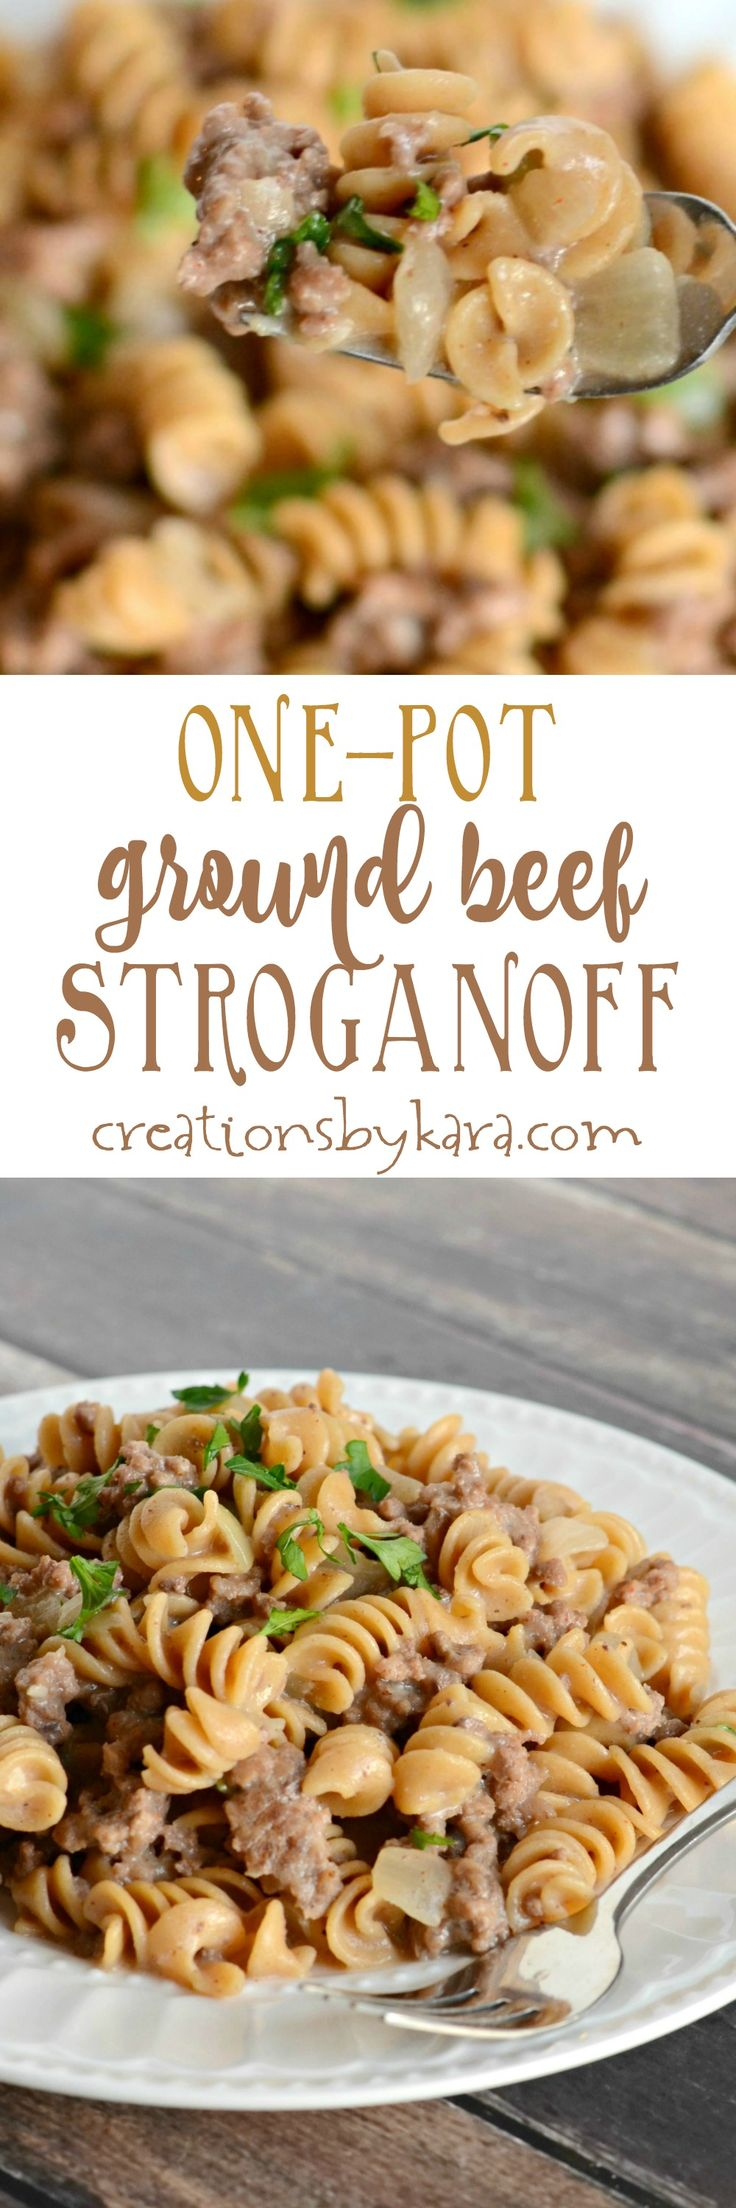 One Pot Ground Beef Stroganoff is a cinch to whip up. And it is hearty and delicious!